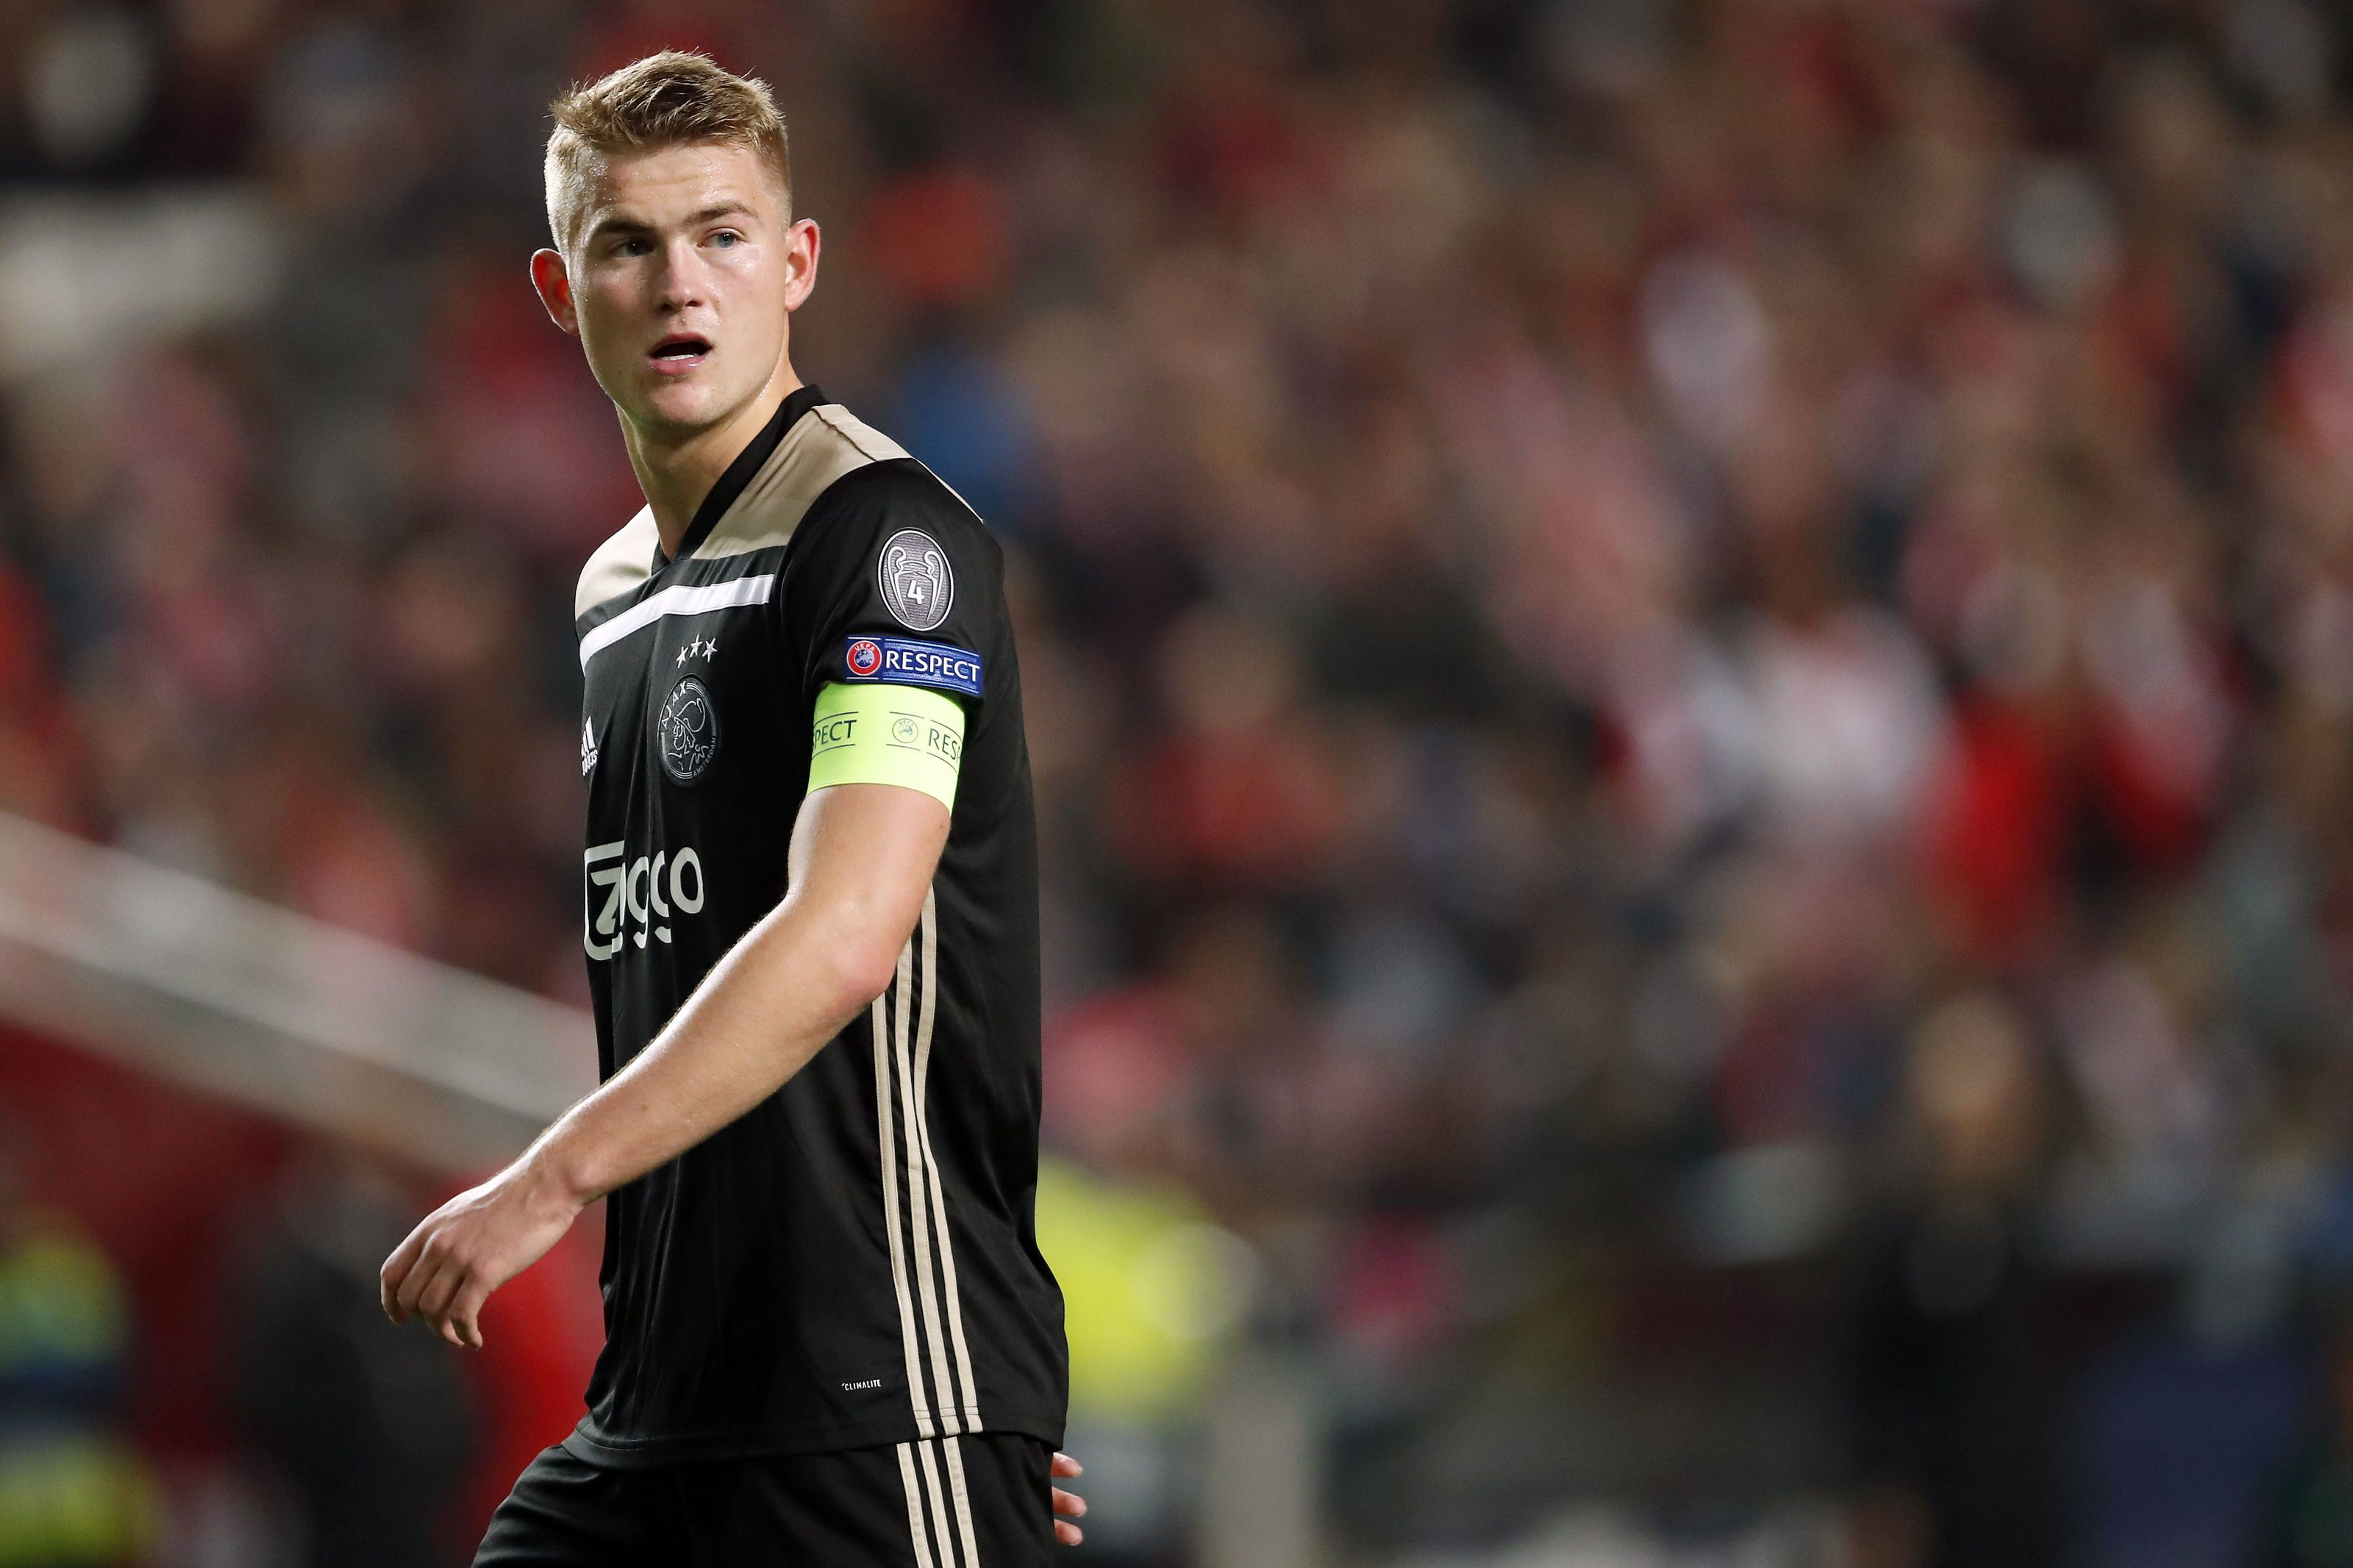 Barcelona are falling behind in the race for Matthijs de Ligt's signature